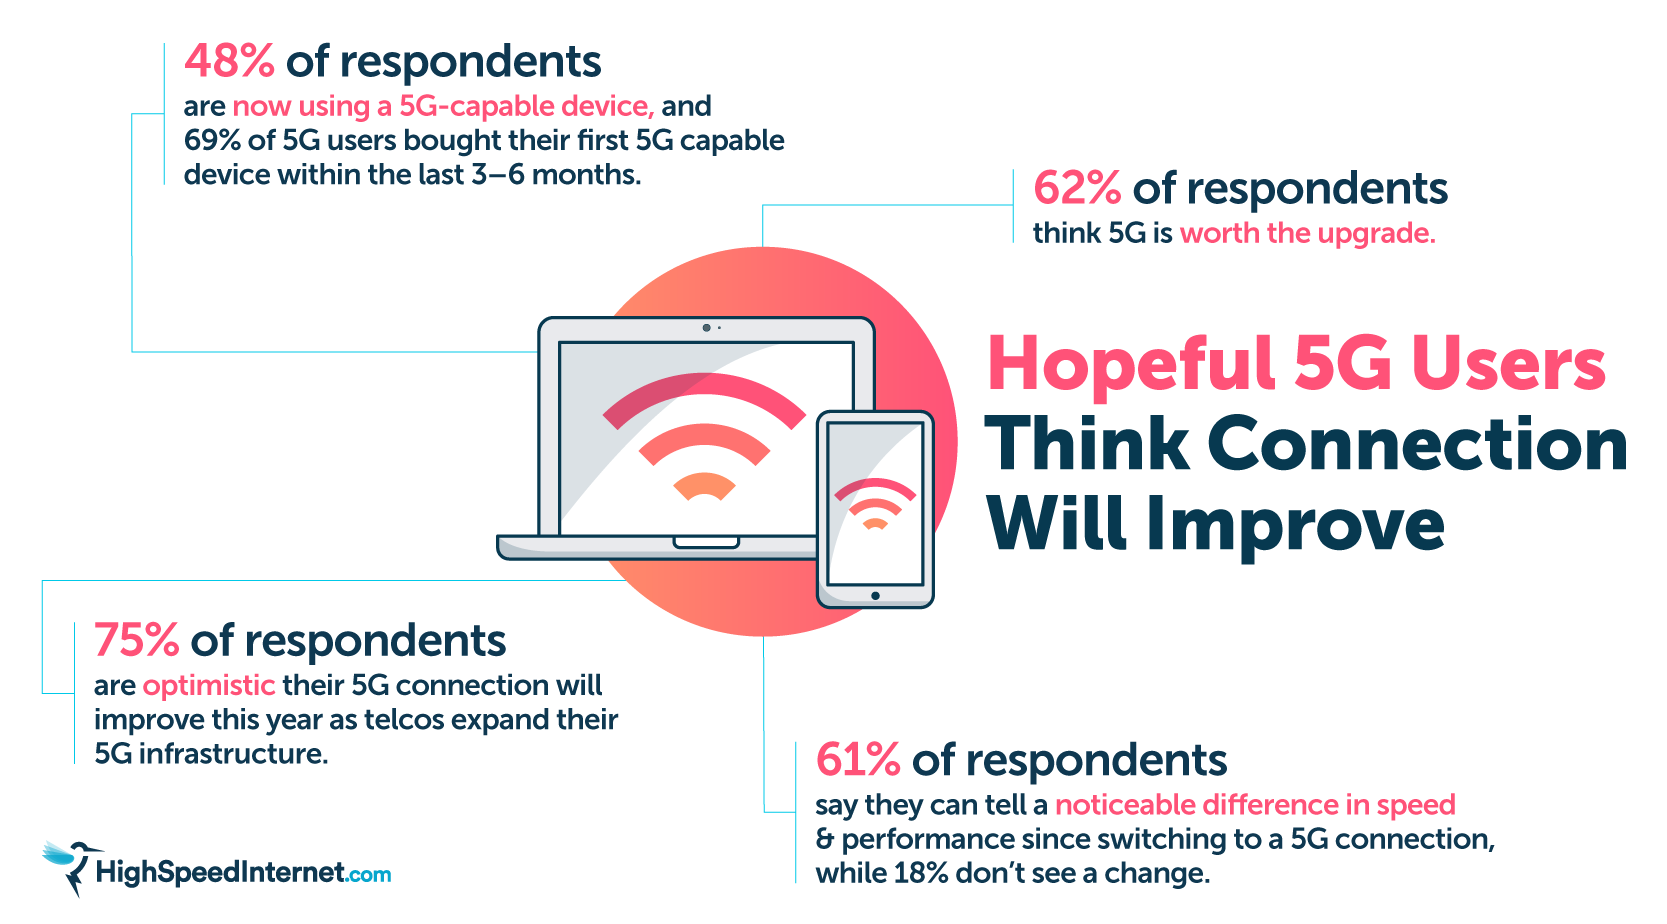 5G Users Think Connection Will Improve